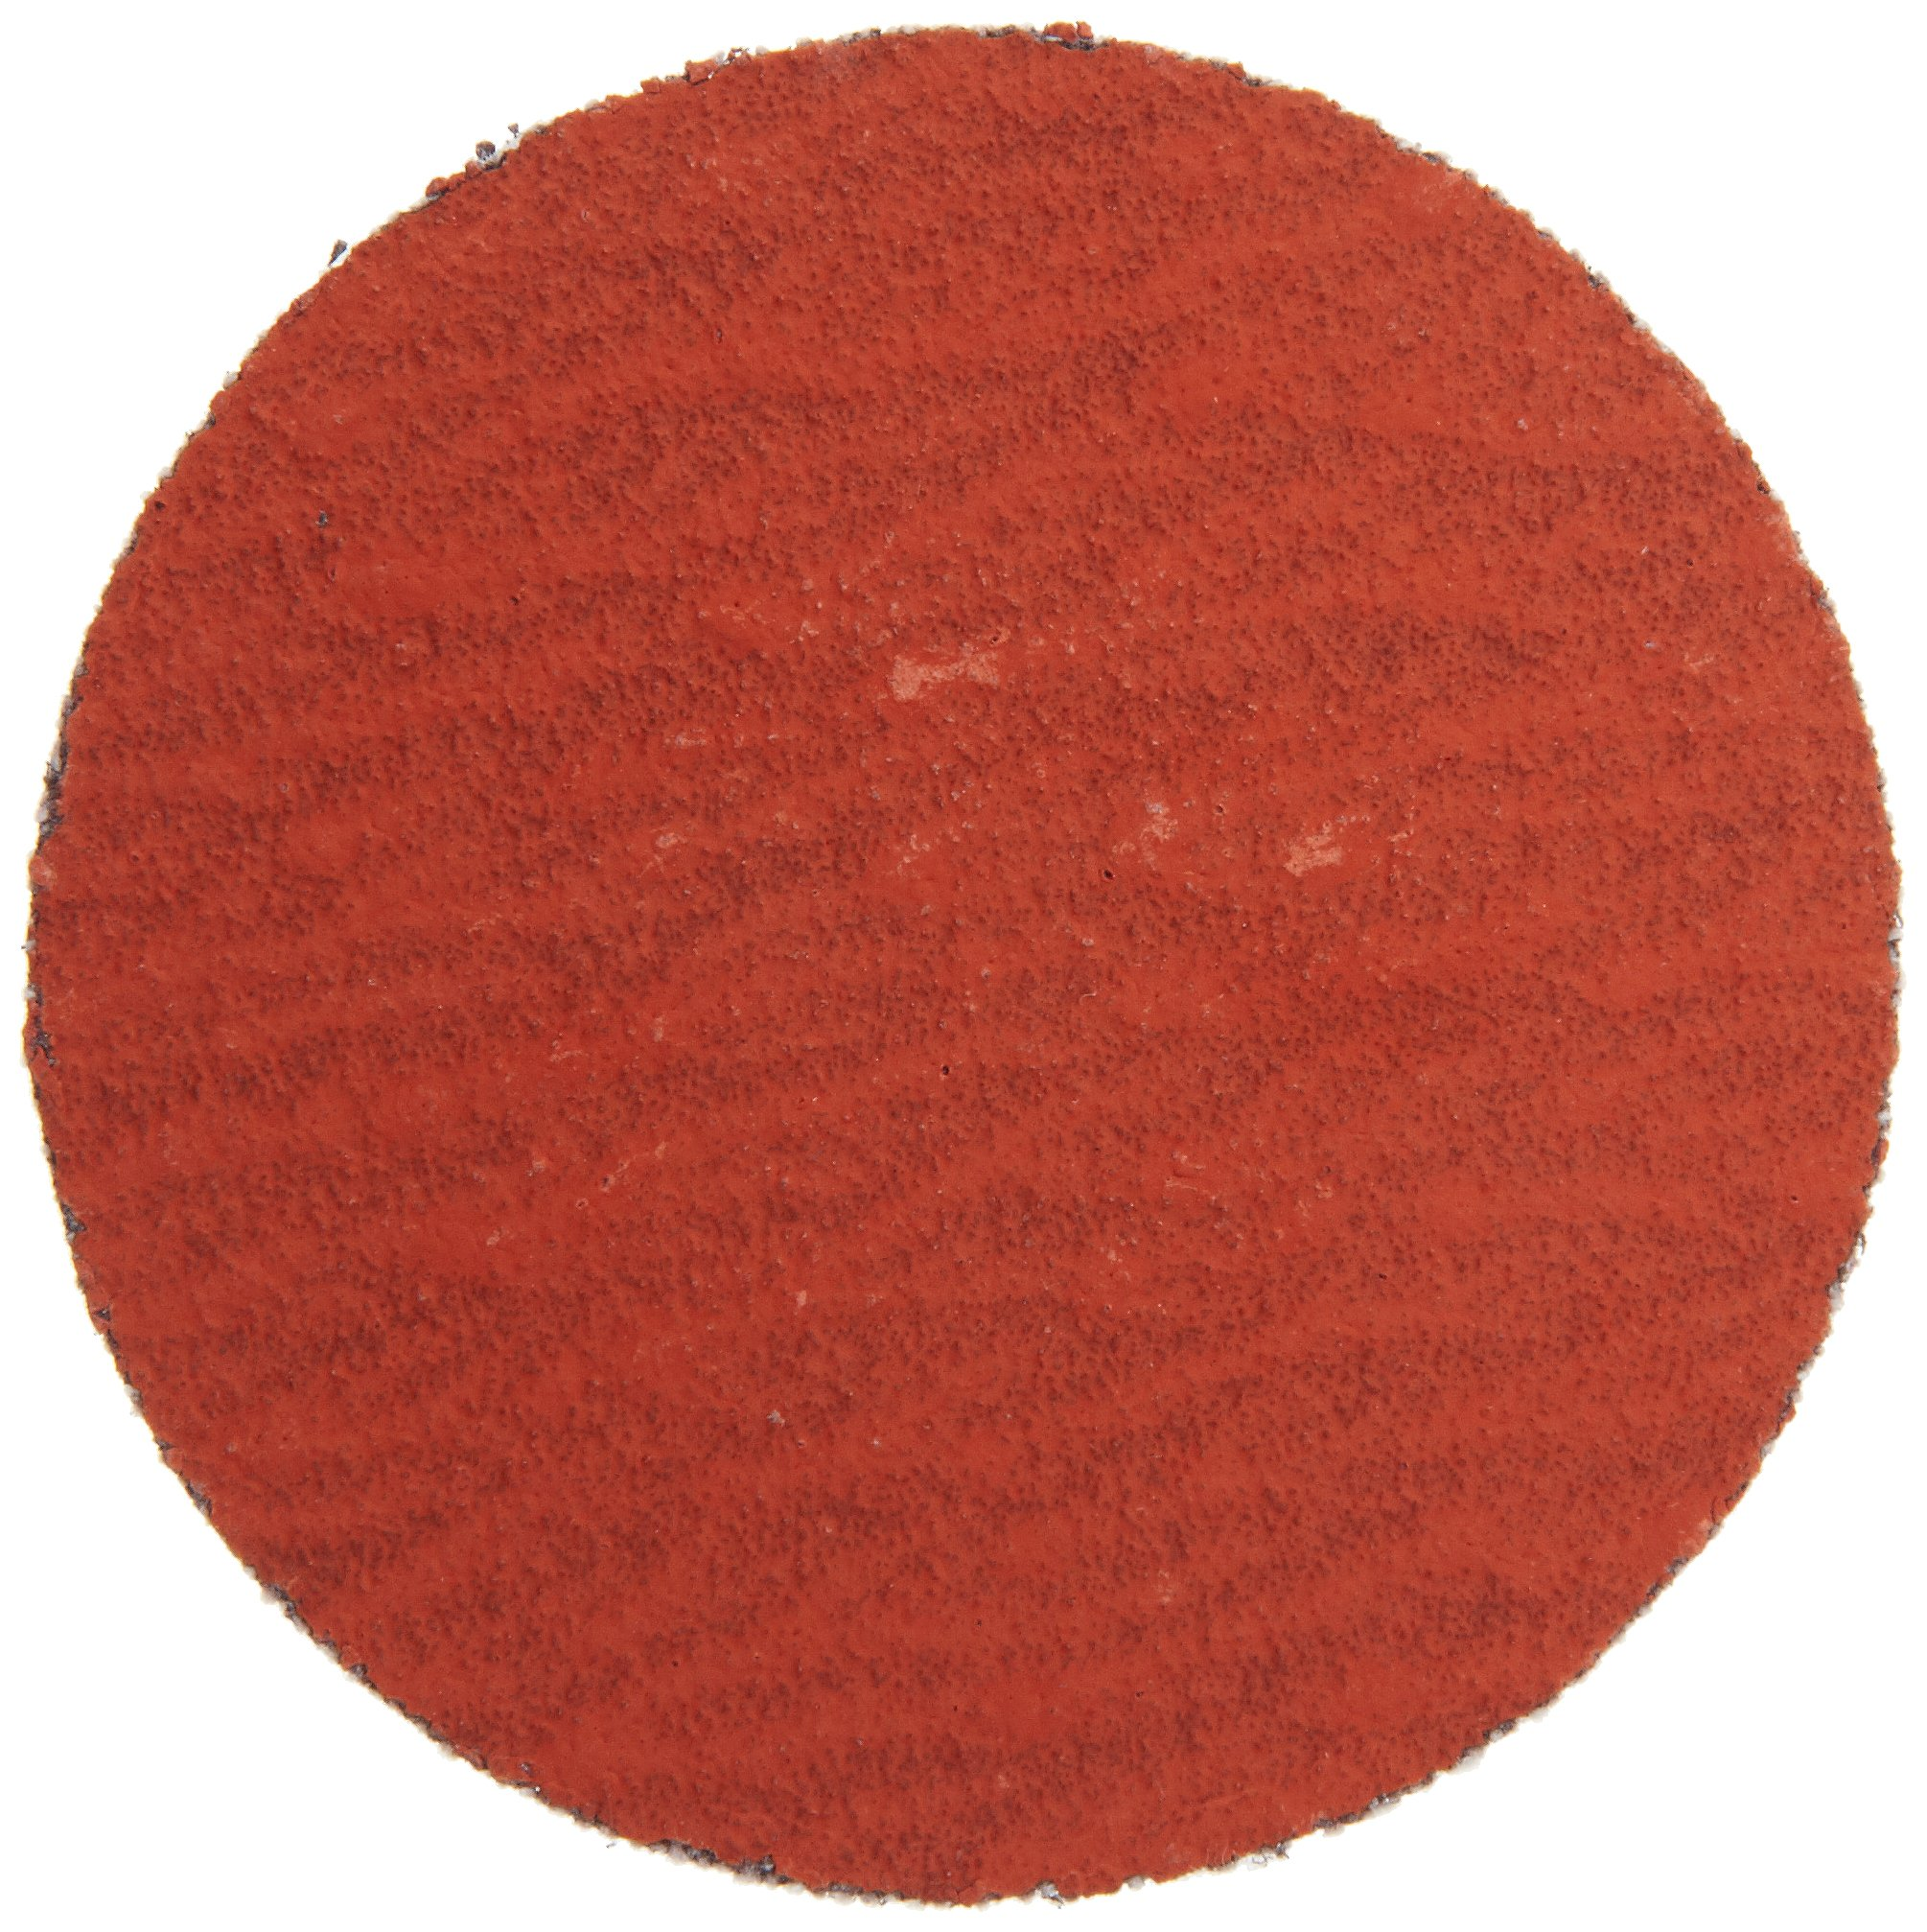 3M Roloc Disc 777F, Cloth, TR Attachment, Ceramic Aluminum Oxide, 2'' Diameter, P120 Grit (Pack of 50)